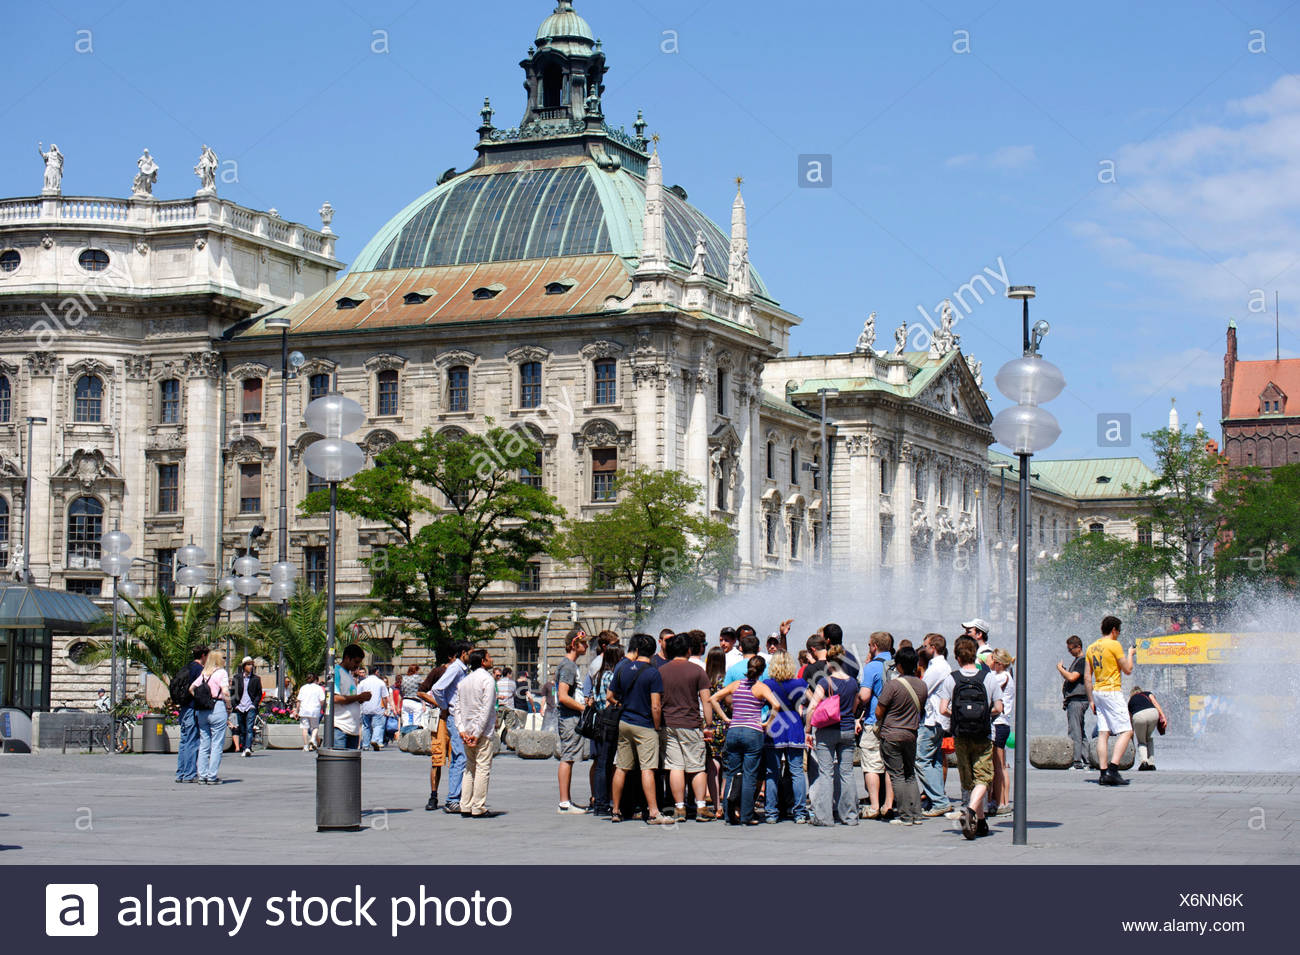 Palace of justice from Karlsplatz square, Stachus, Munich, Upper Bavaria, Germany, Europe - Stock Image